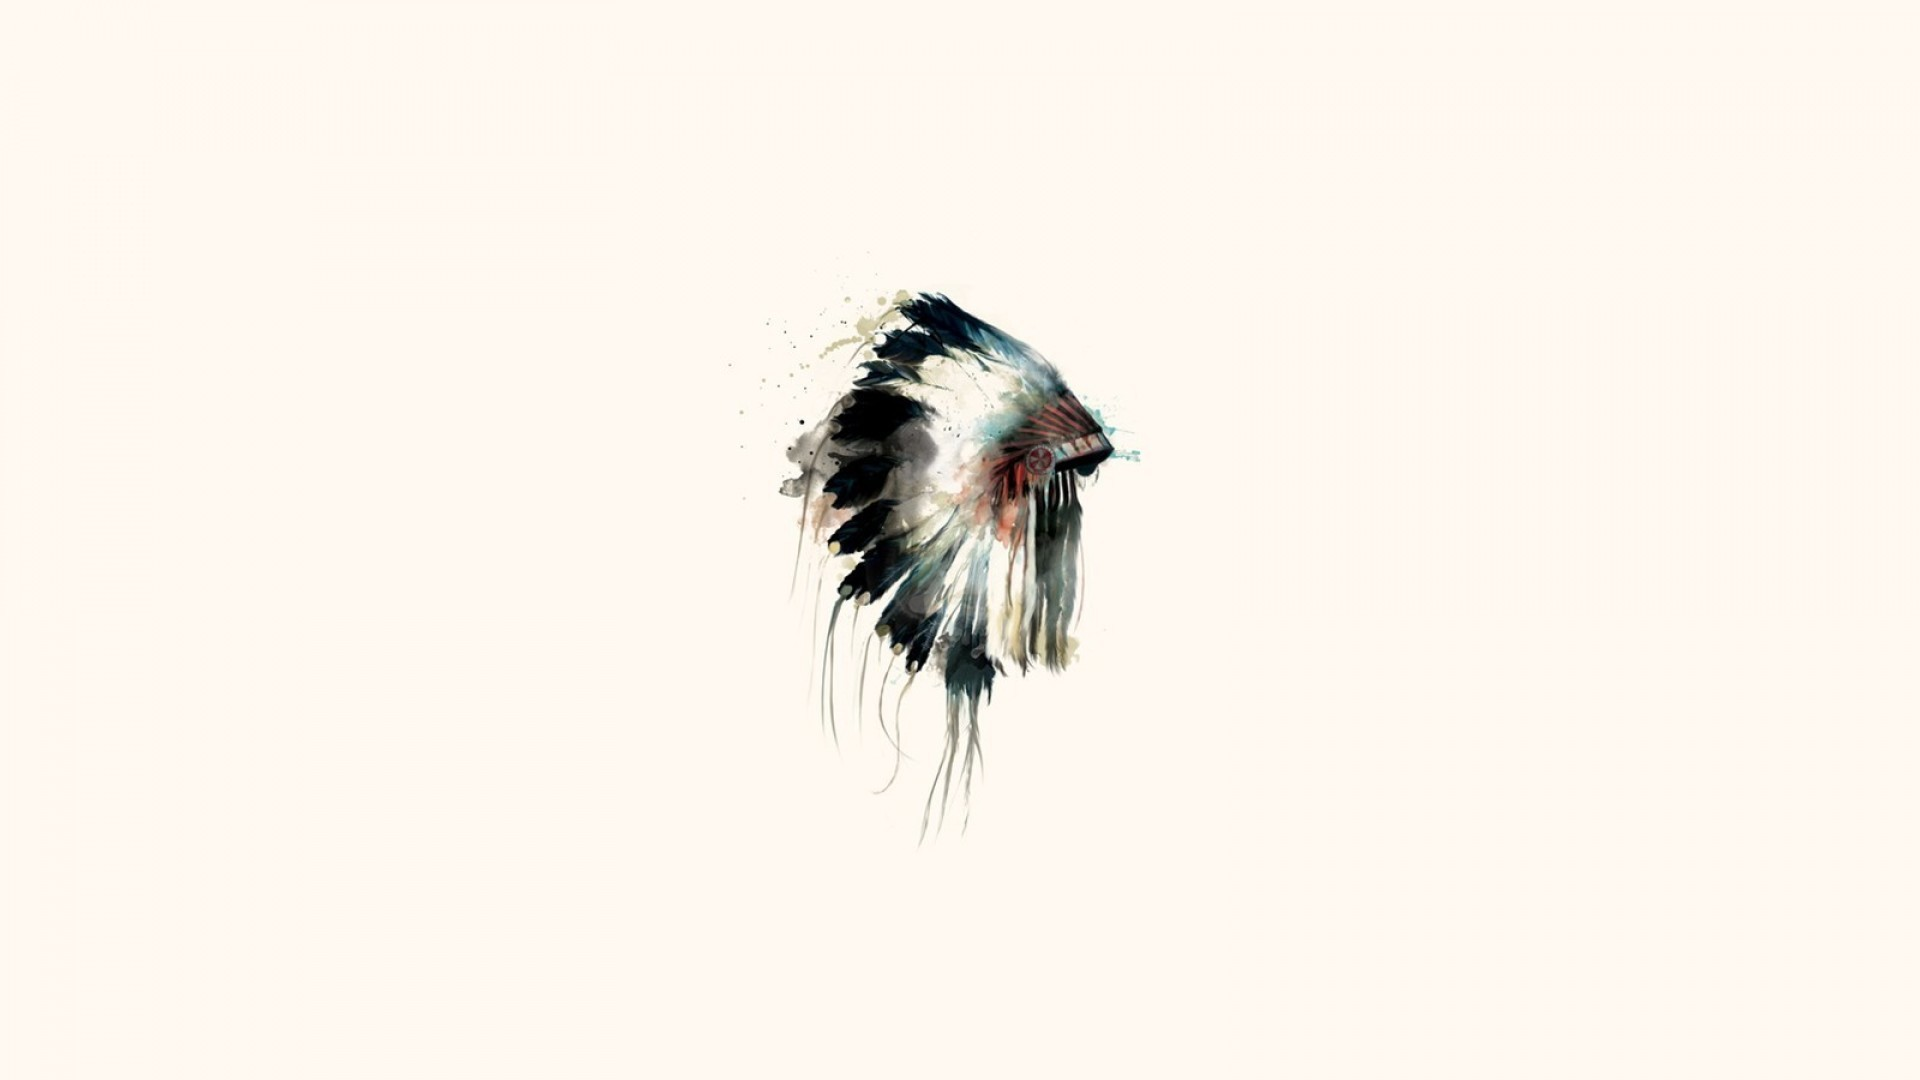 Collection Of American Indian Wallpapers On HDWallpapers